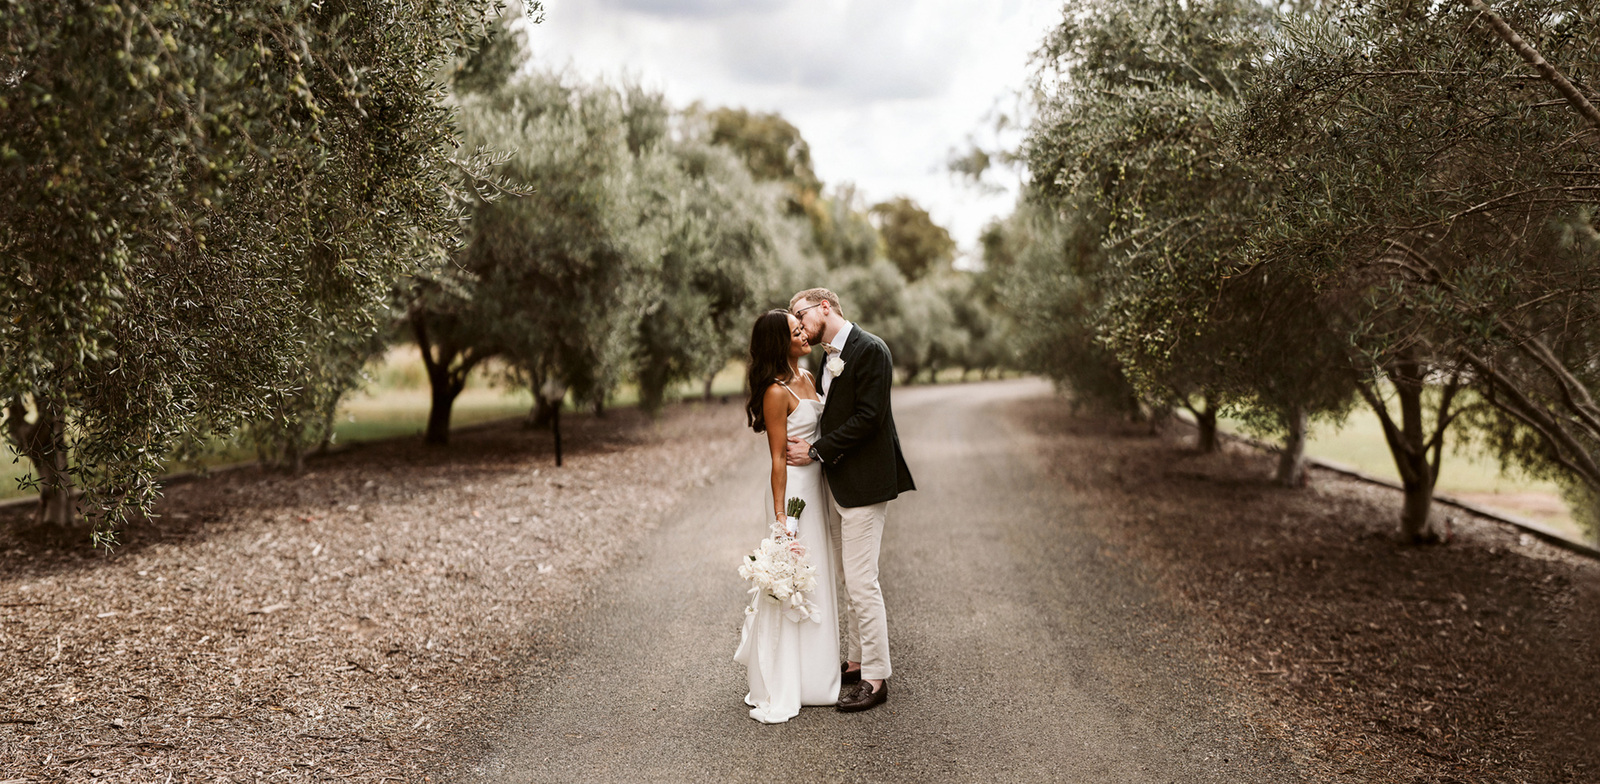 Tina and Matt down the lane at their Greystone Estate wedding in the Hunter Valley